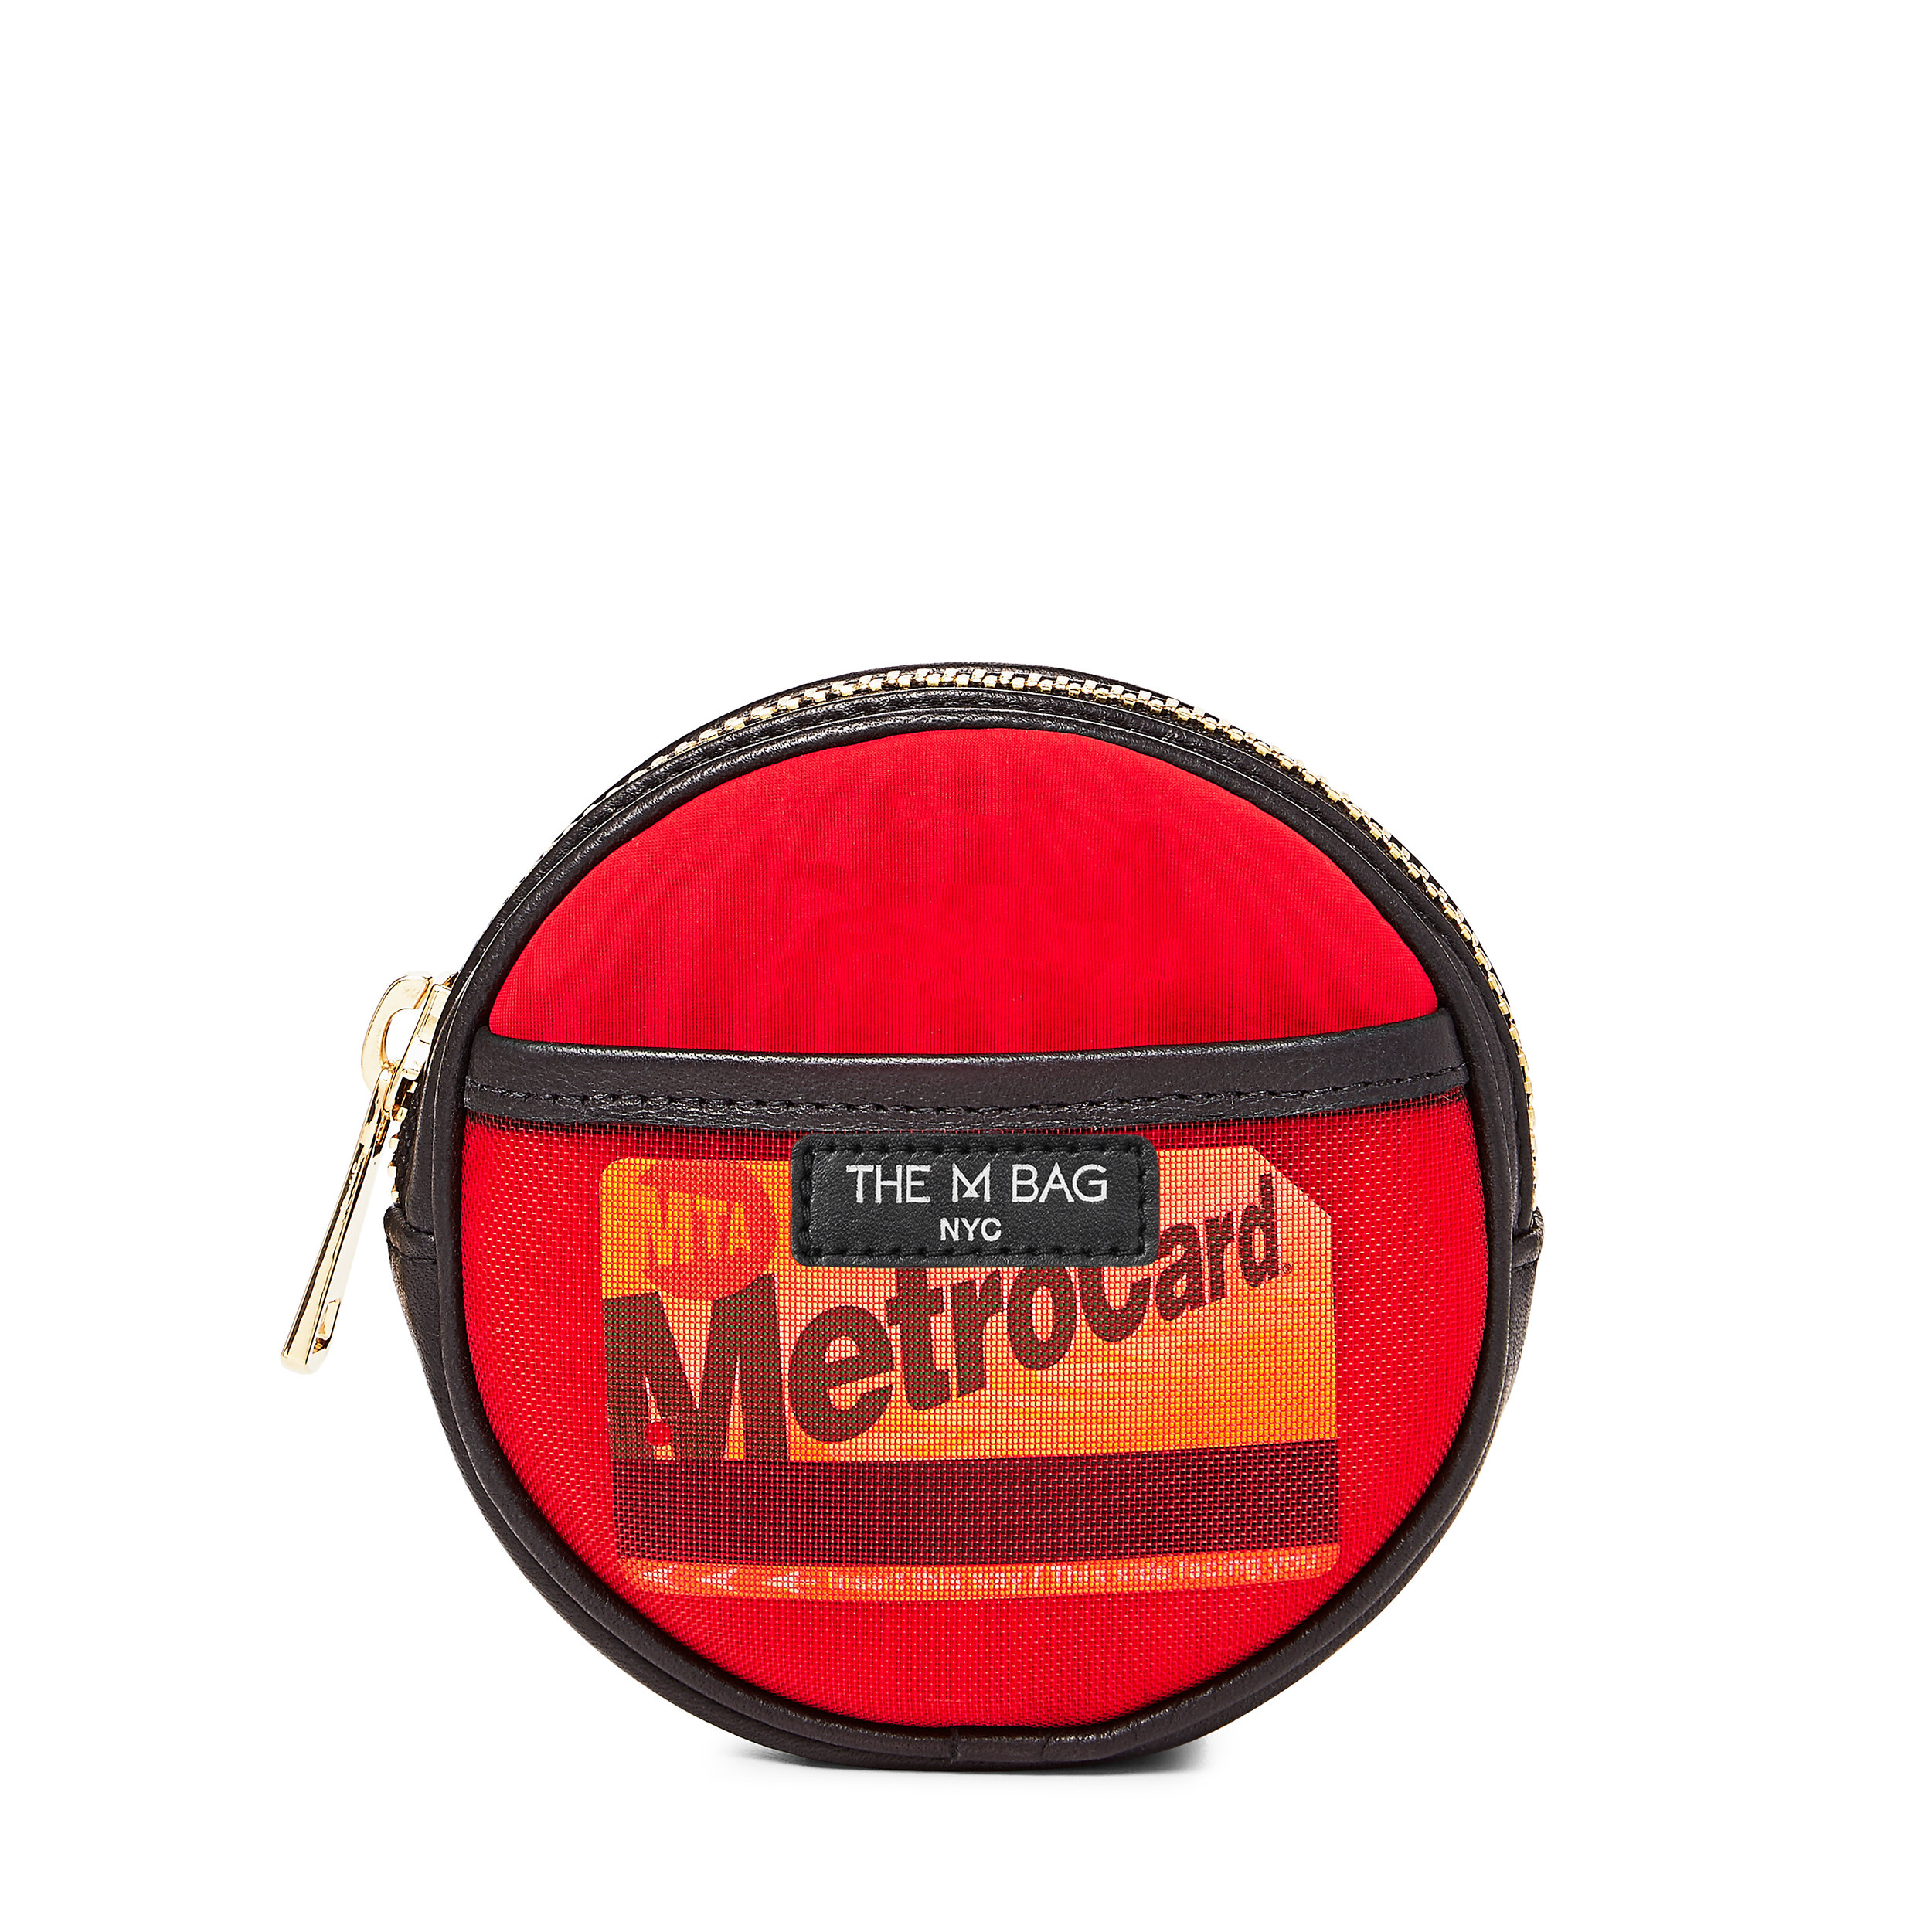 The M Bag injects some fun and charm into this product shot, while also giving a sense of size and functionality